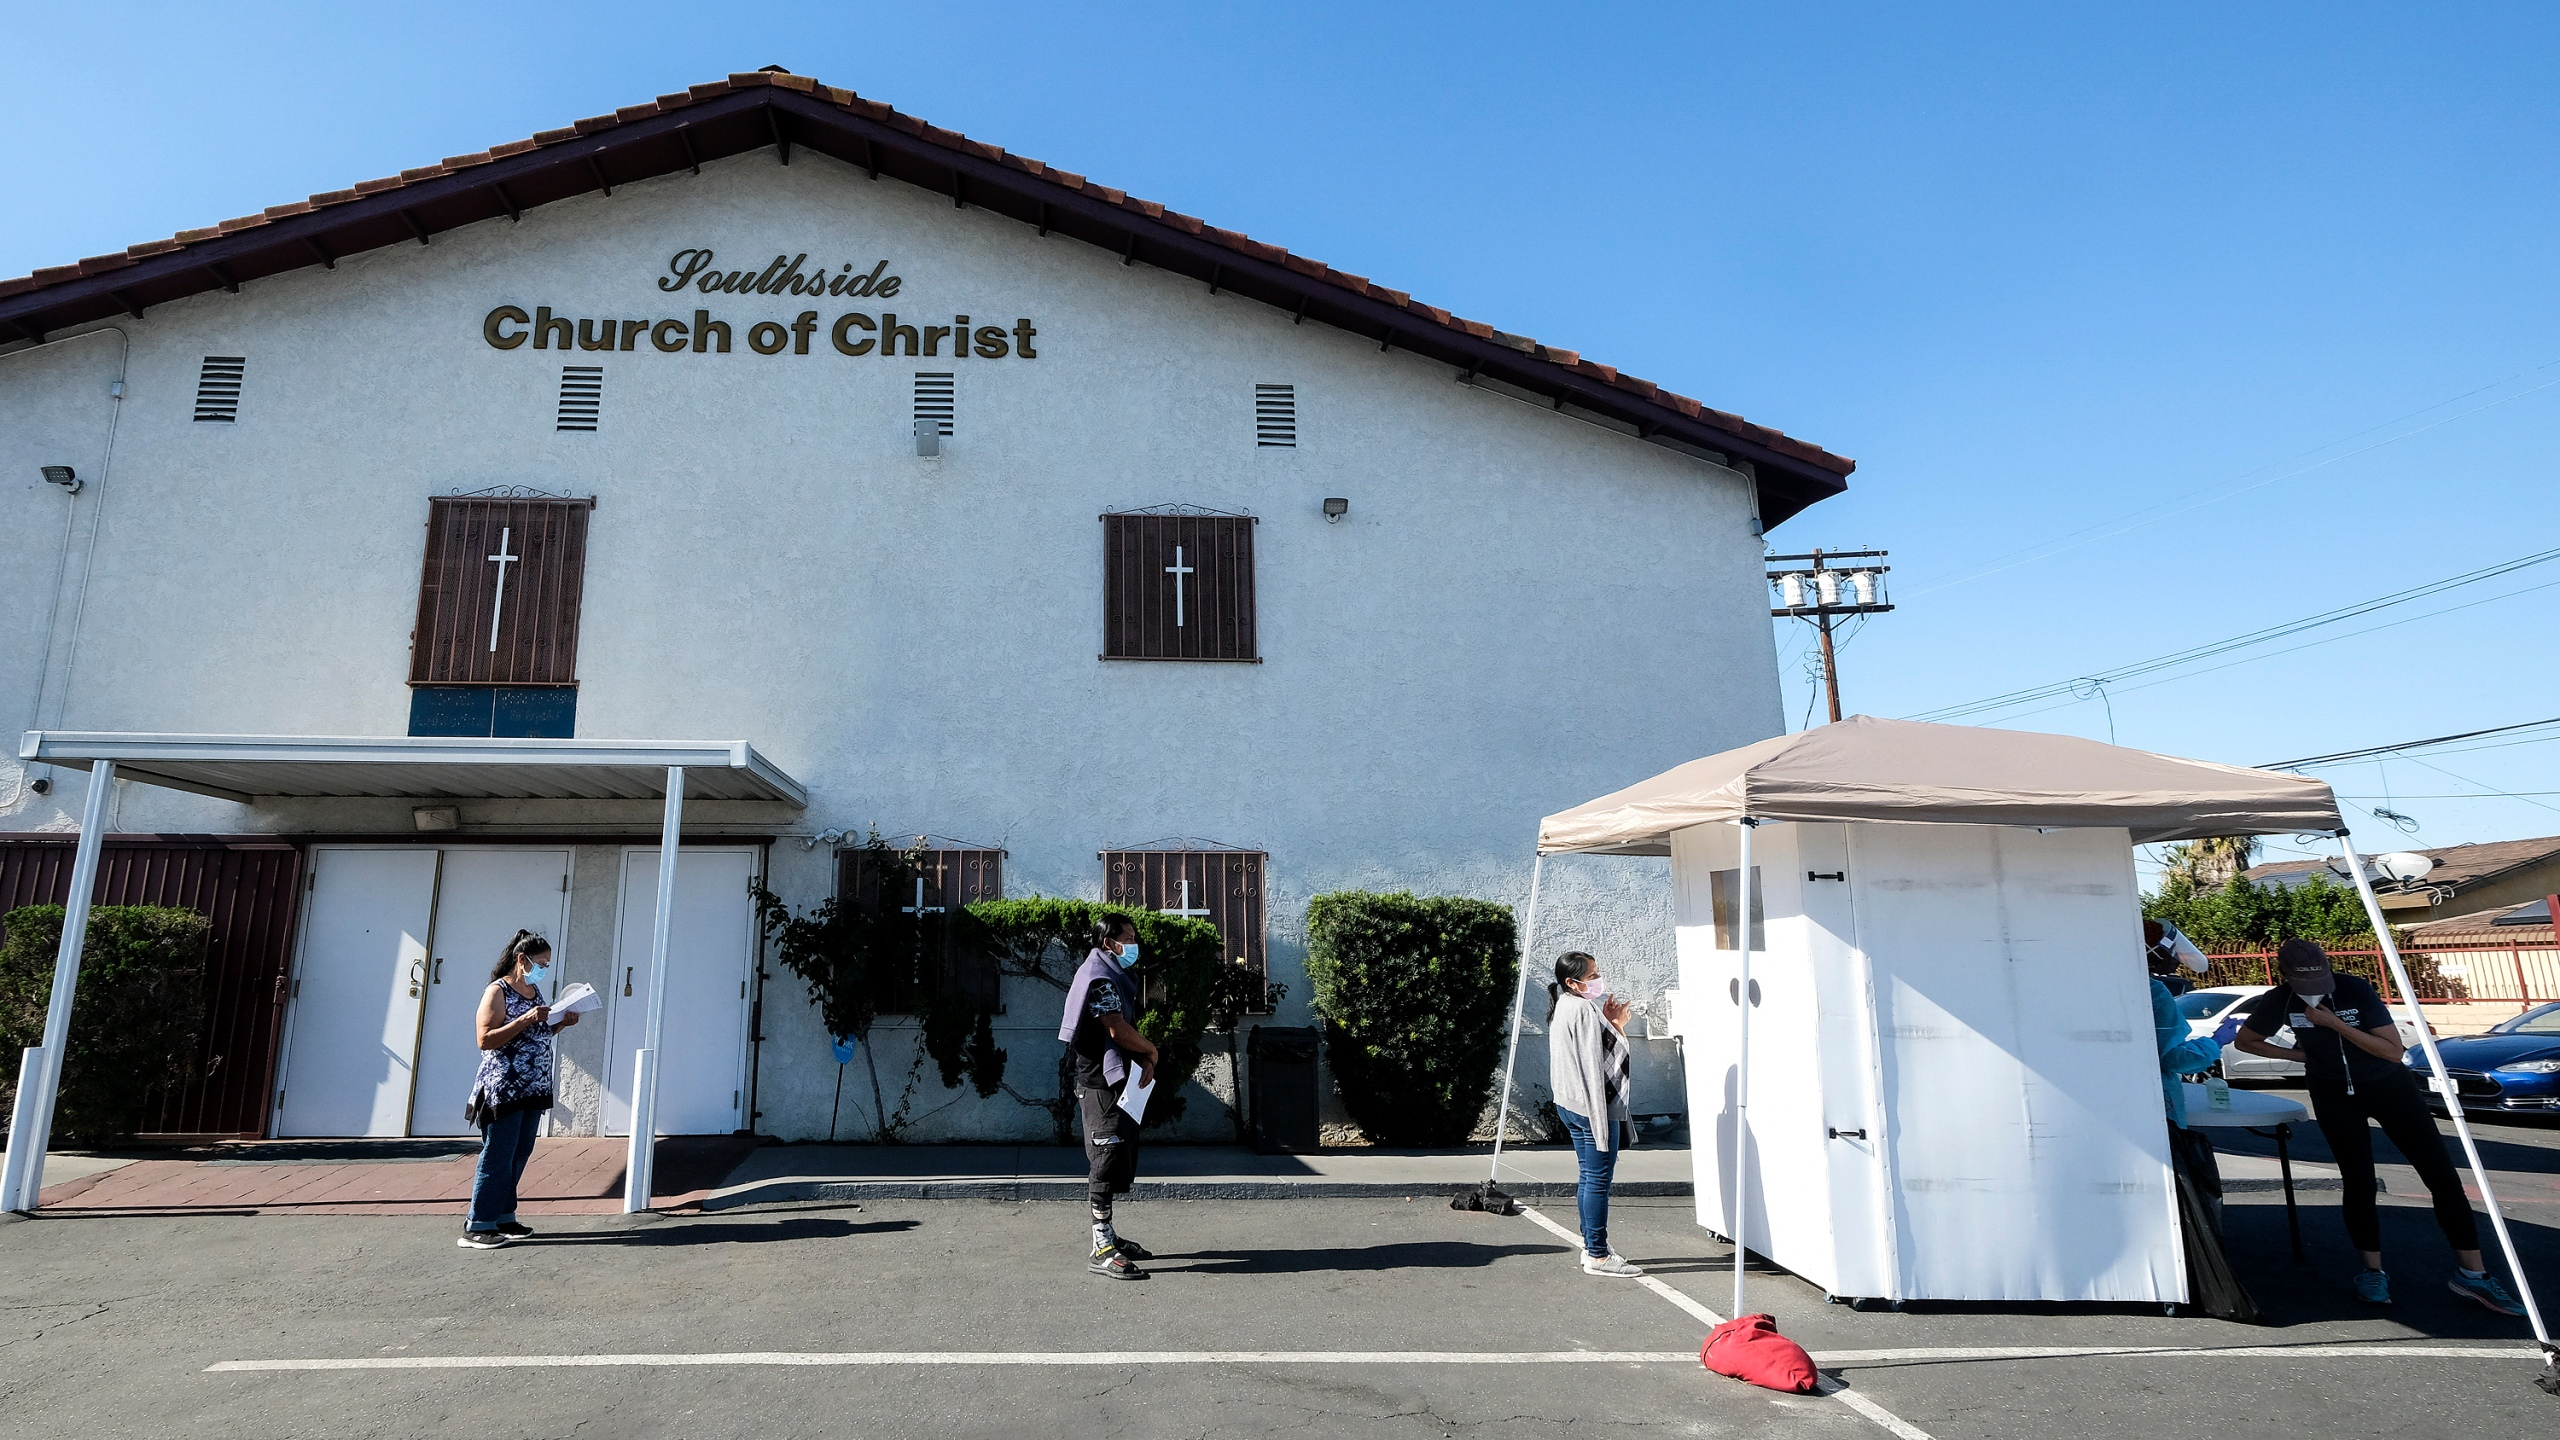 People wait in line at the Southside Church of Christ in Los Angeles, California, on January 18, 2021 as free rapid Covid-19 antibody and PCR tests are administered to local residents in honor of Martin Luther King Jr. Day. (Ringo Chiu/AFP via Getty Images)